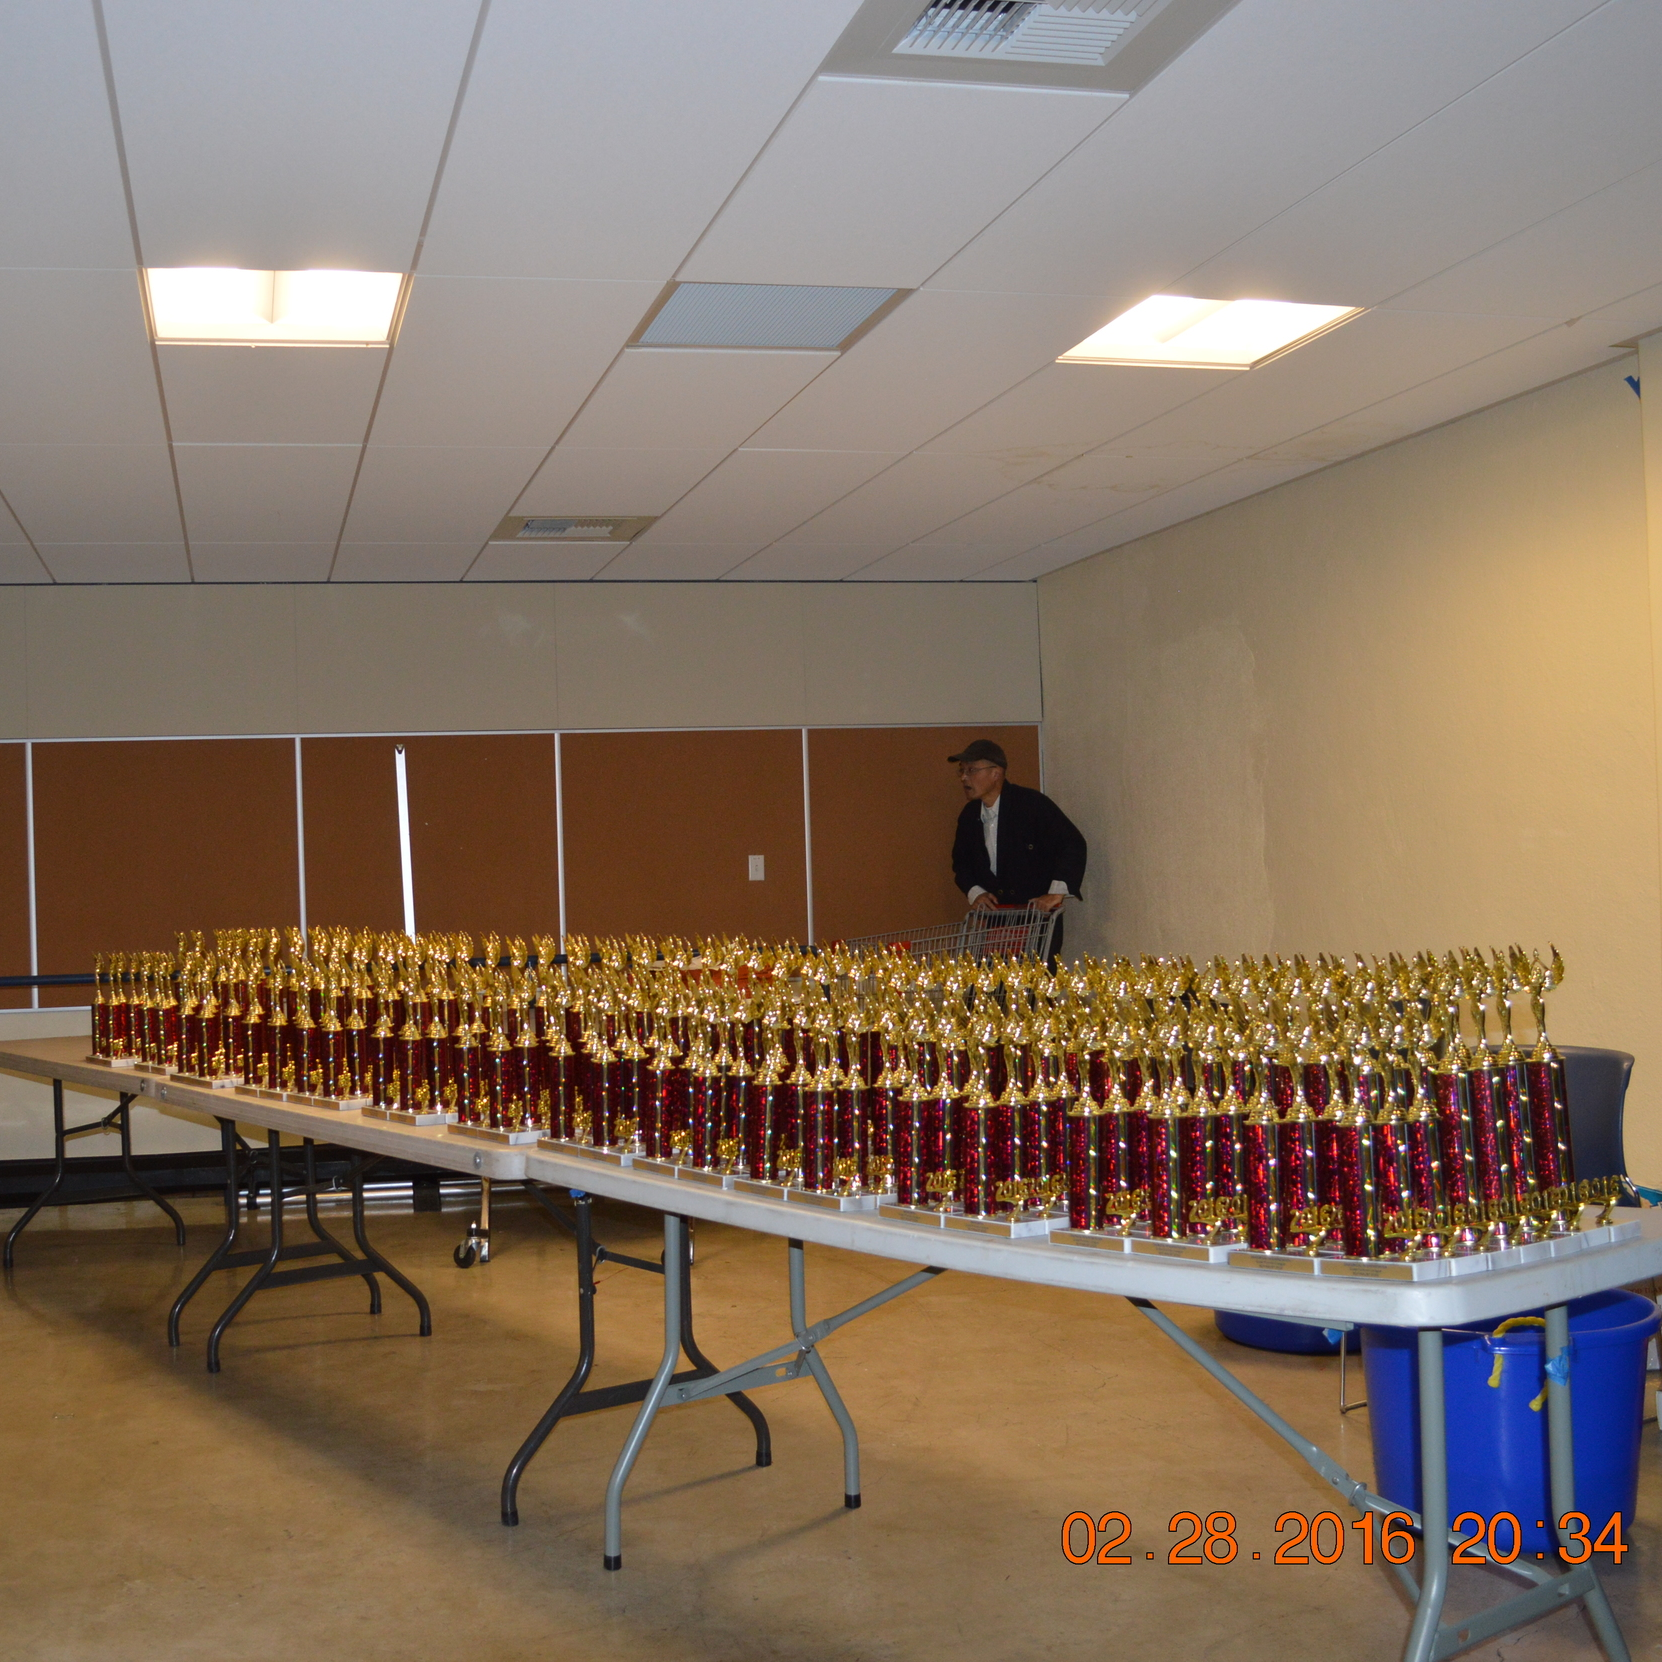 Trophies all lined up and ready for awards